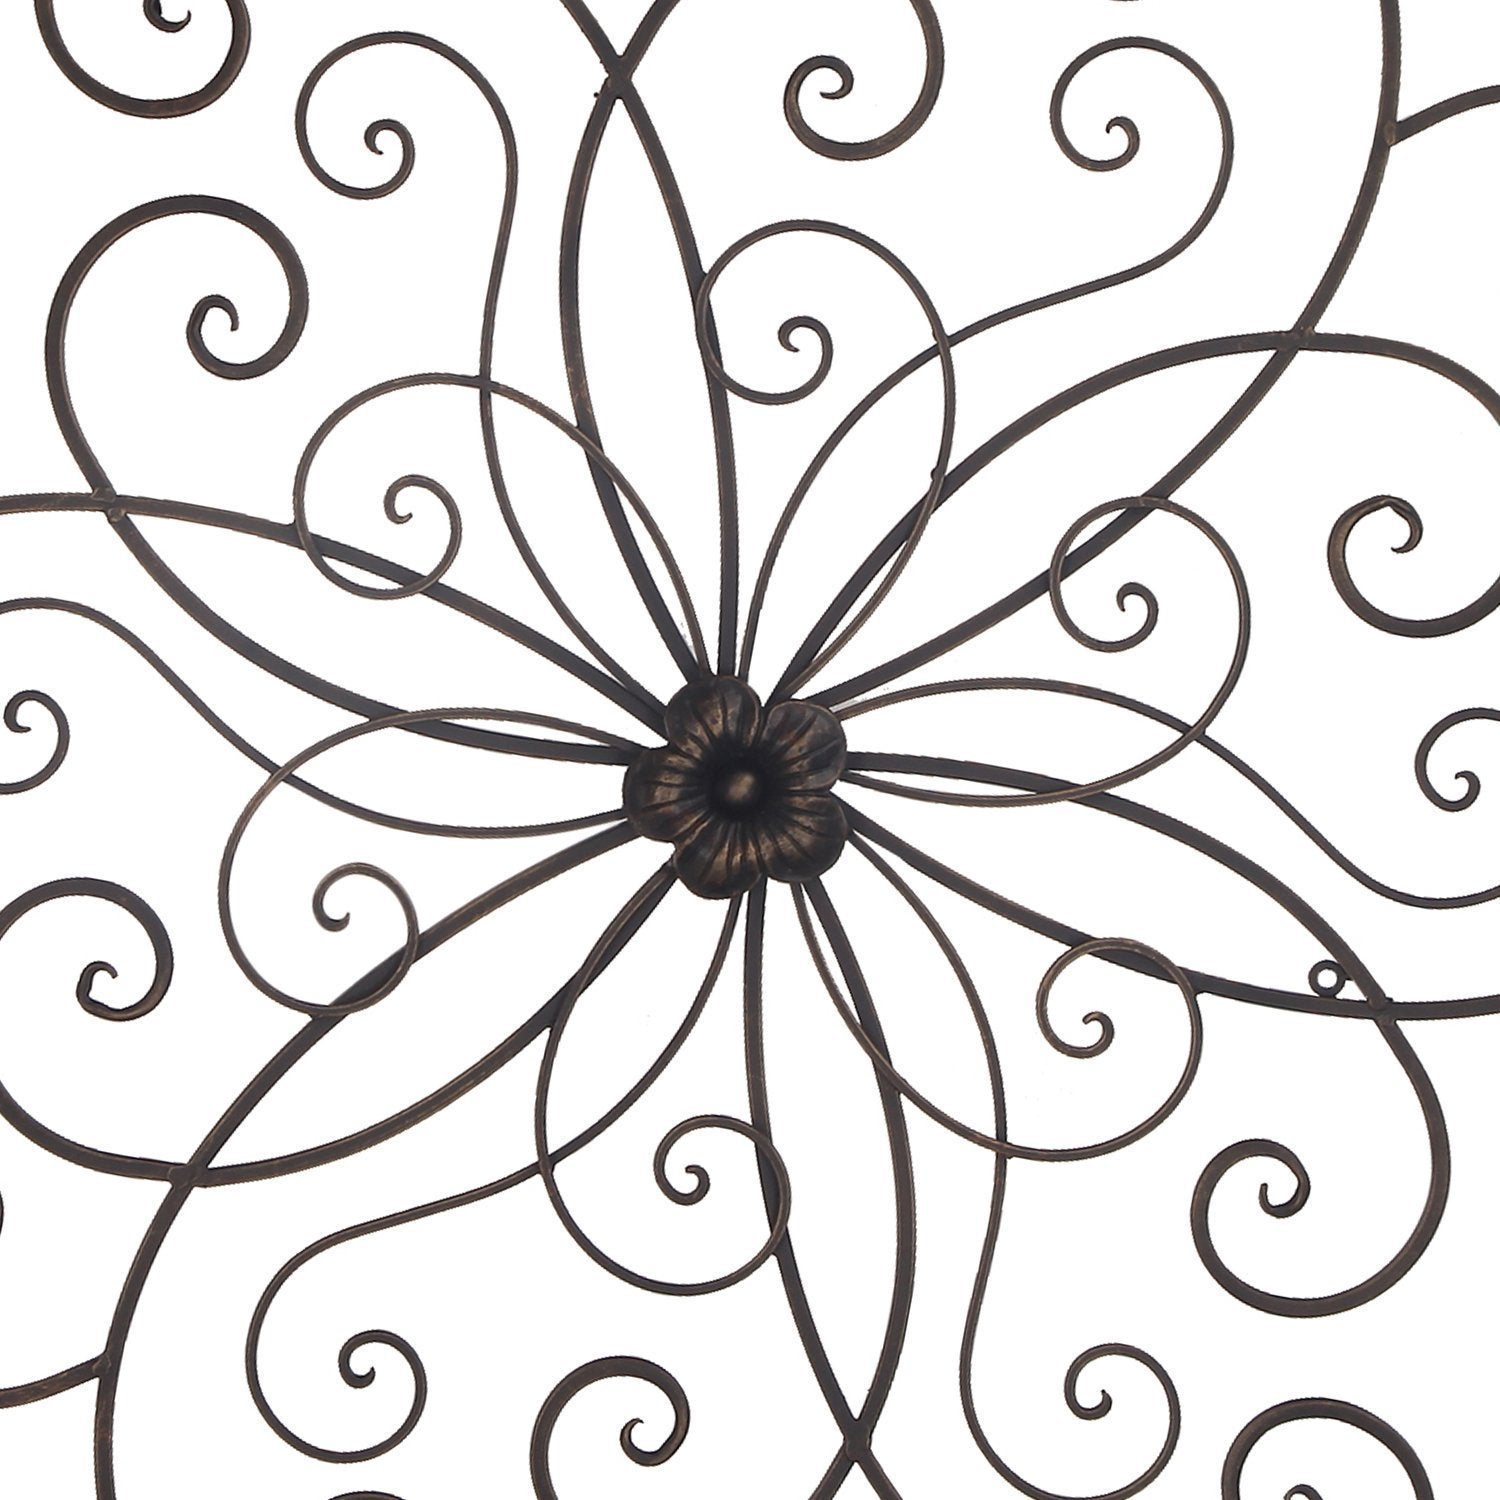 Shop Adeco Bronze Flower Urban Design Metal Wall Decor For Nature Throughout Most Popular Flower Urban Design Metal Wall Decor (View 16 of 20)